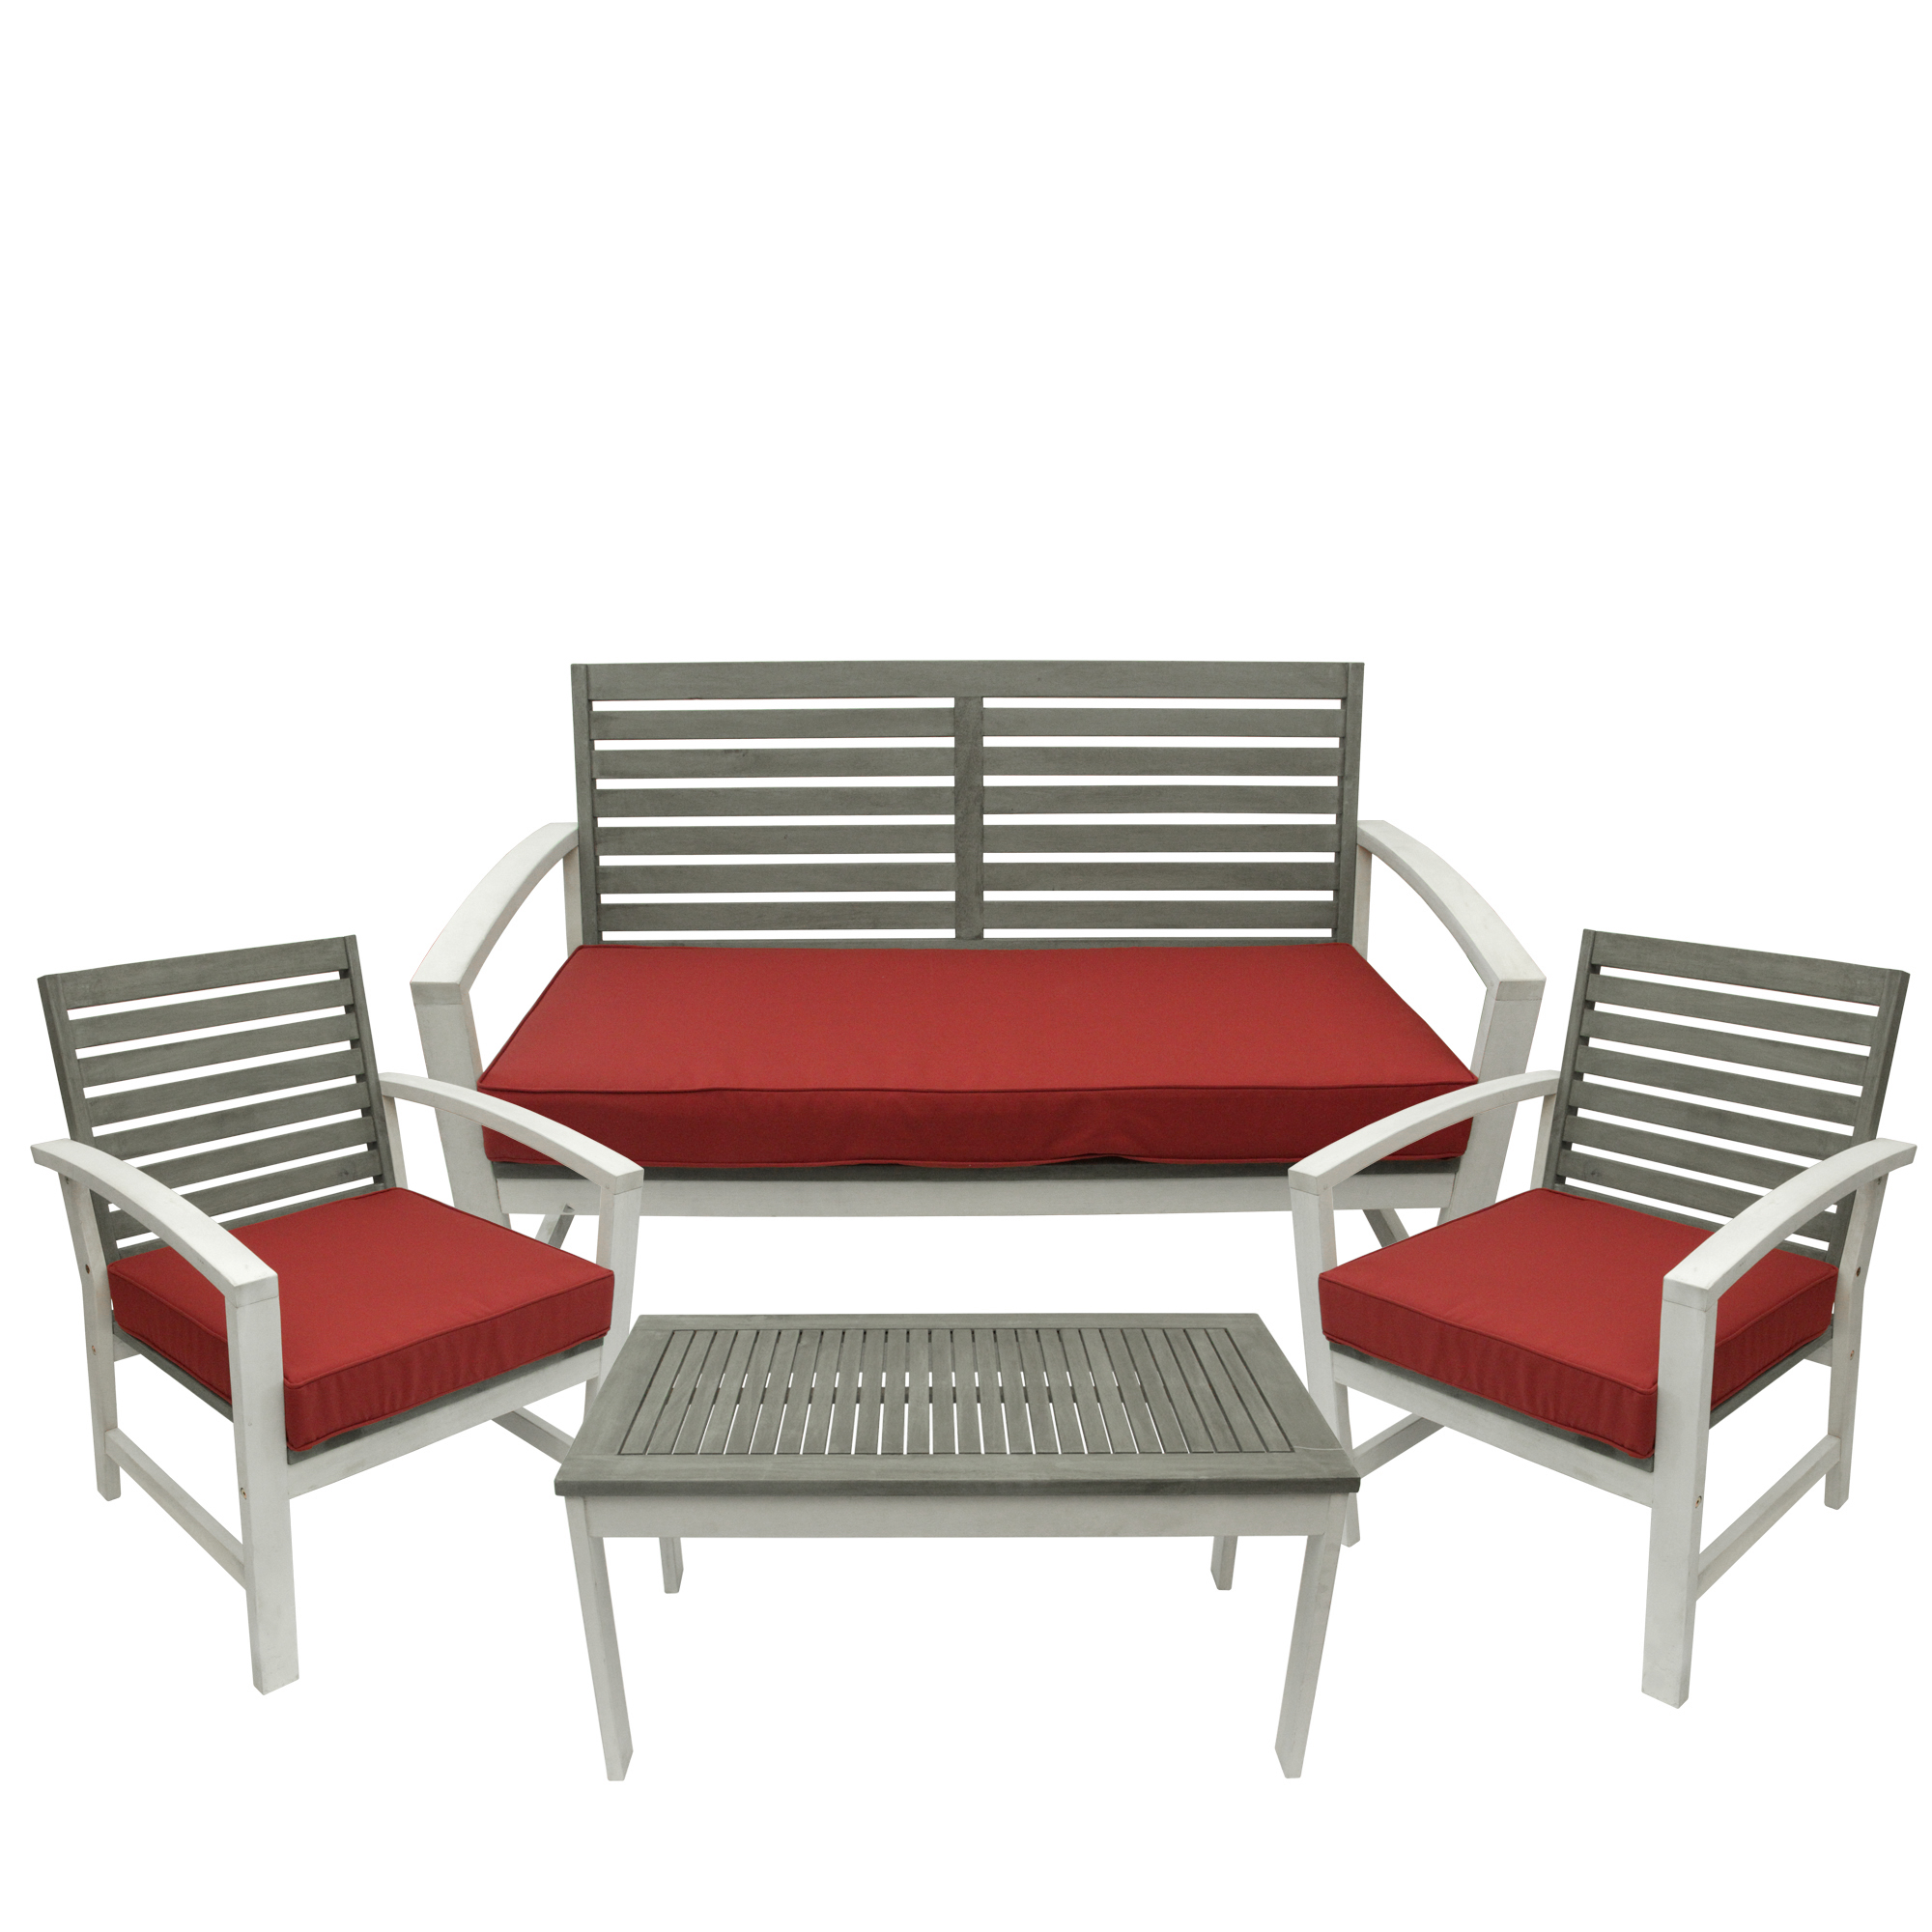 4-Piece Gray and White Acacia Wood Outdoor Patio Table and Chair Furniture Set - Red Cushions